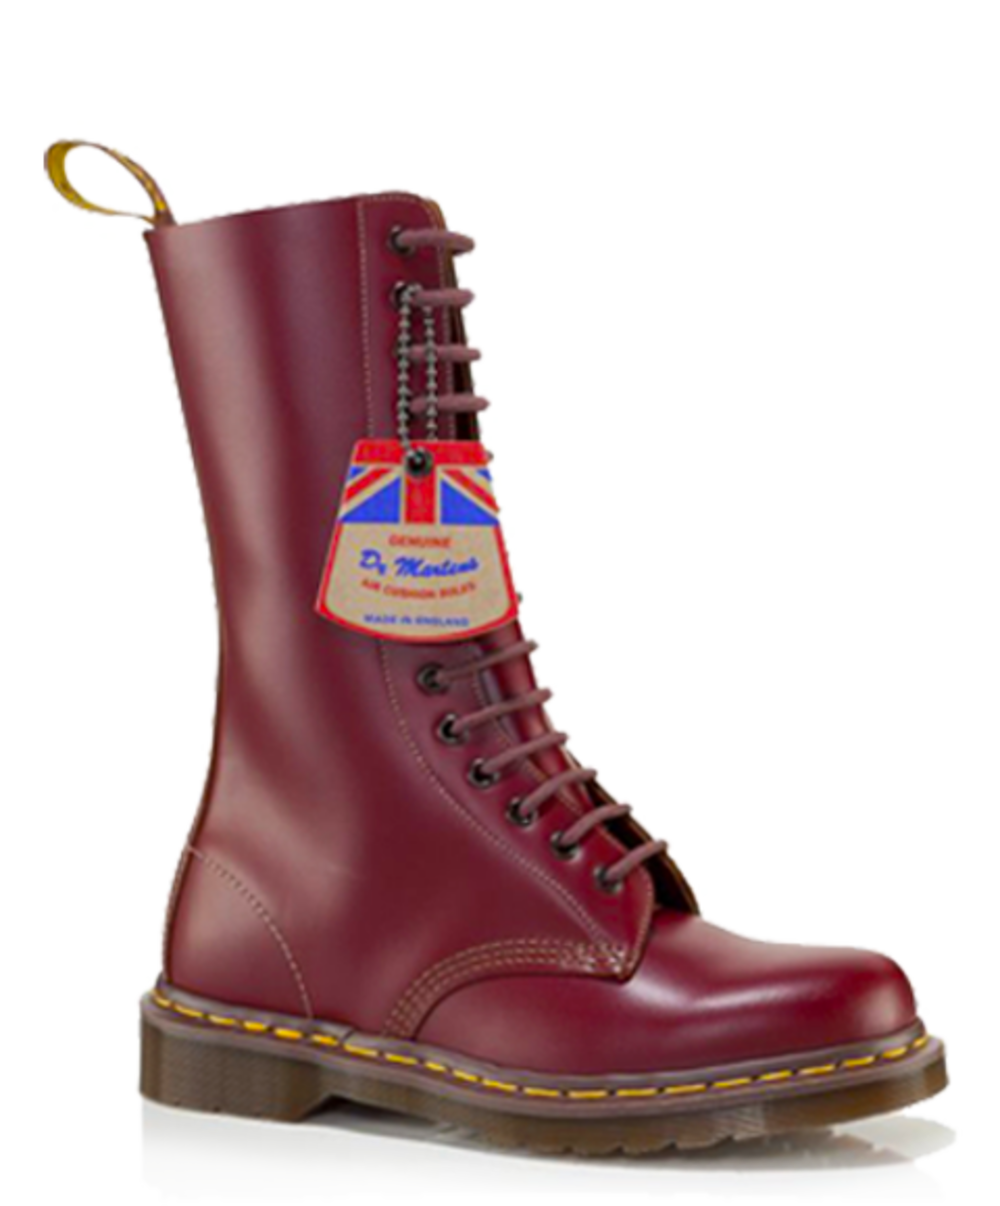 20fb6ac590078 Dr Martens Vintage 1914 Boot MADE IN ENGLAND 14 Hole Ox Blood Quilon  Leather 8